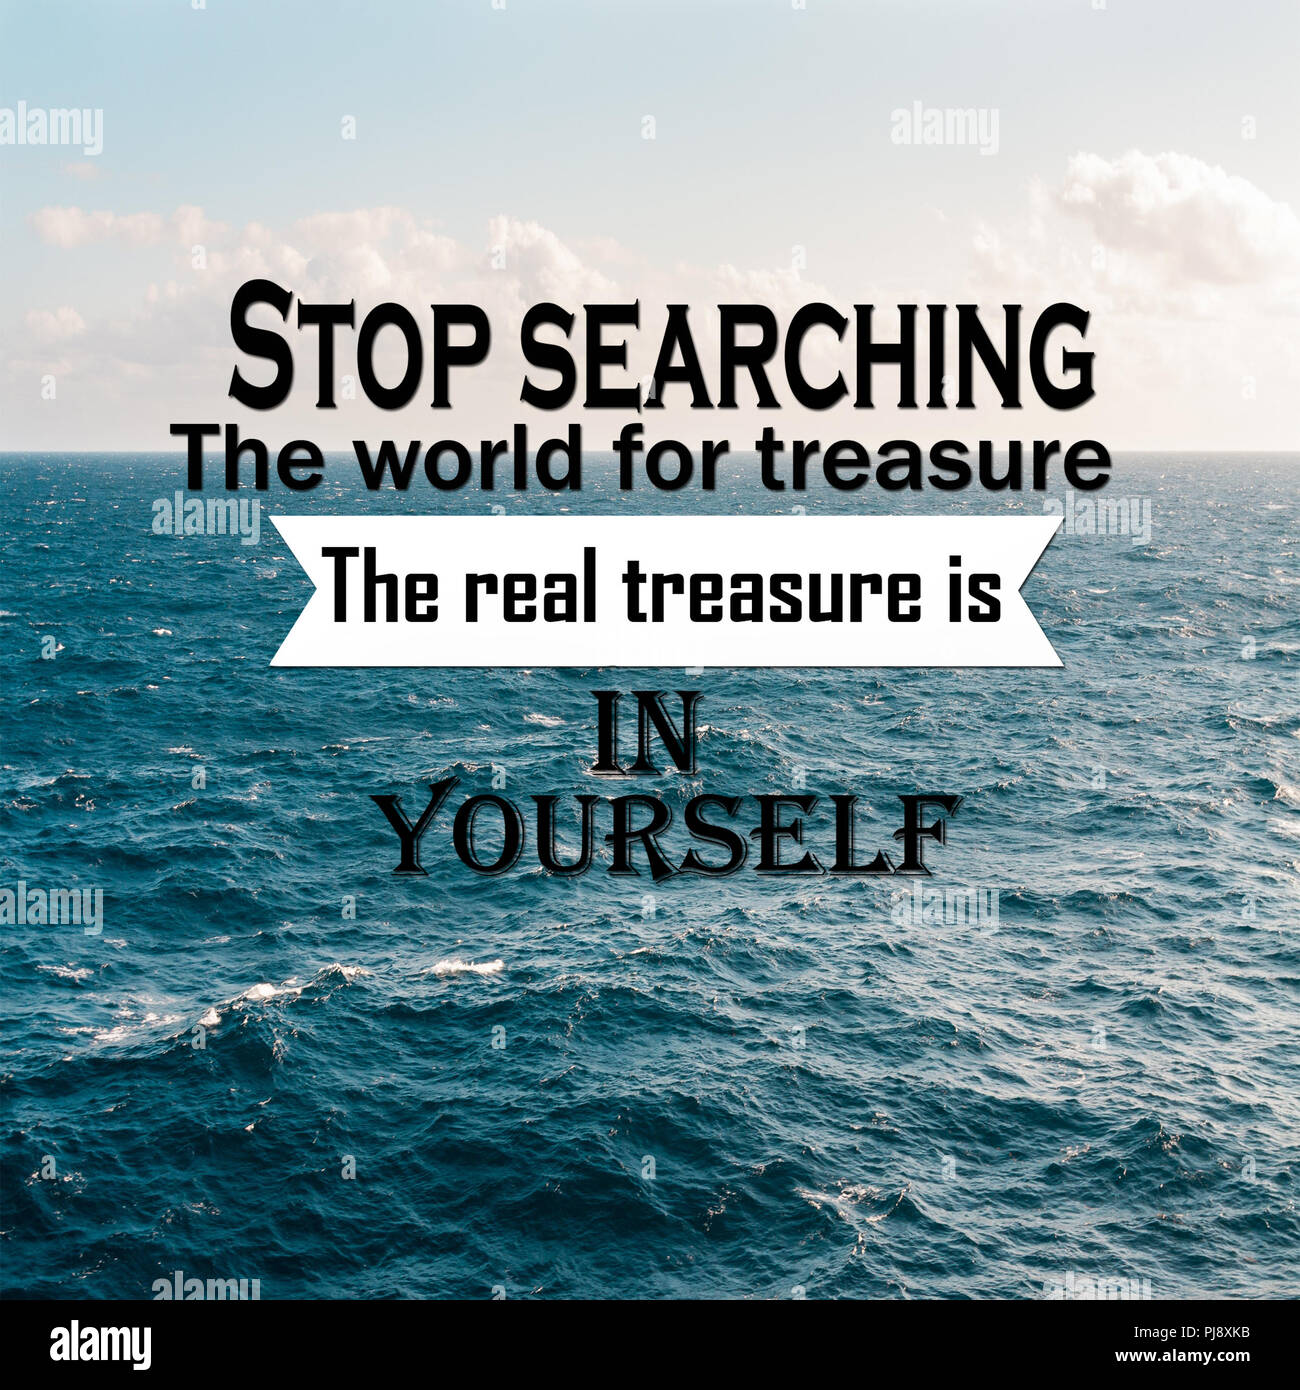 Inspirational Quotes: Stop searching the world for treasure the